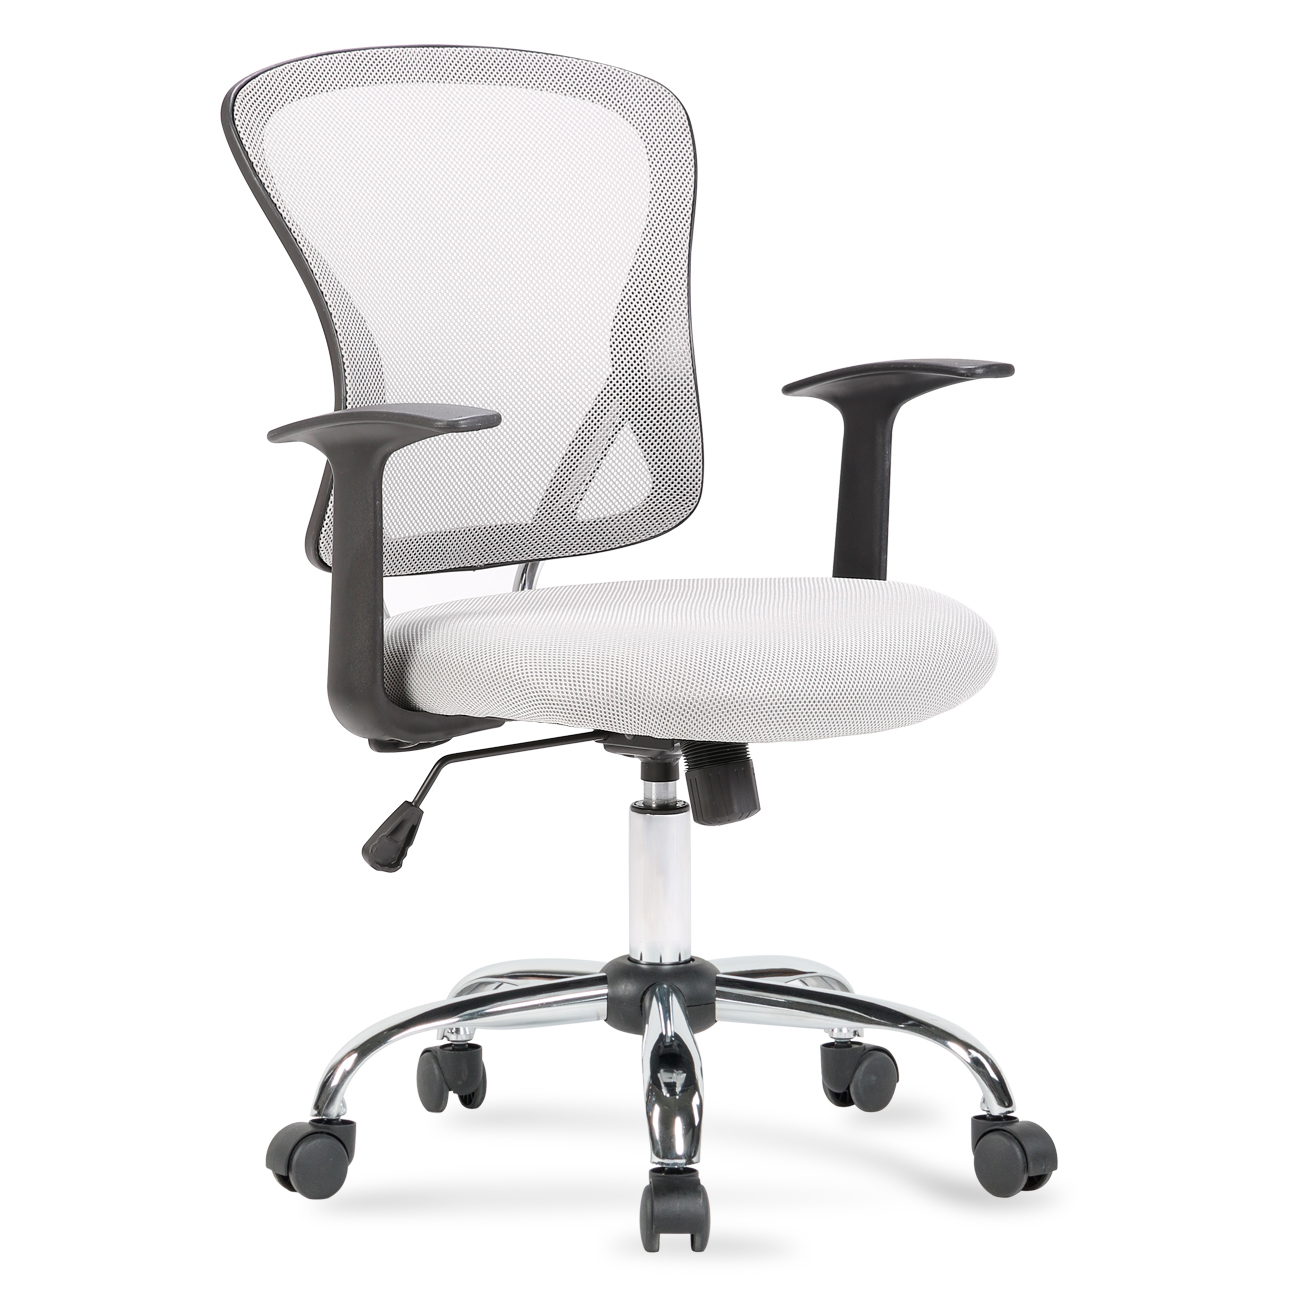 Belleze Mesh Mid Back Office Chair Adjustable Padded Seat, Gray